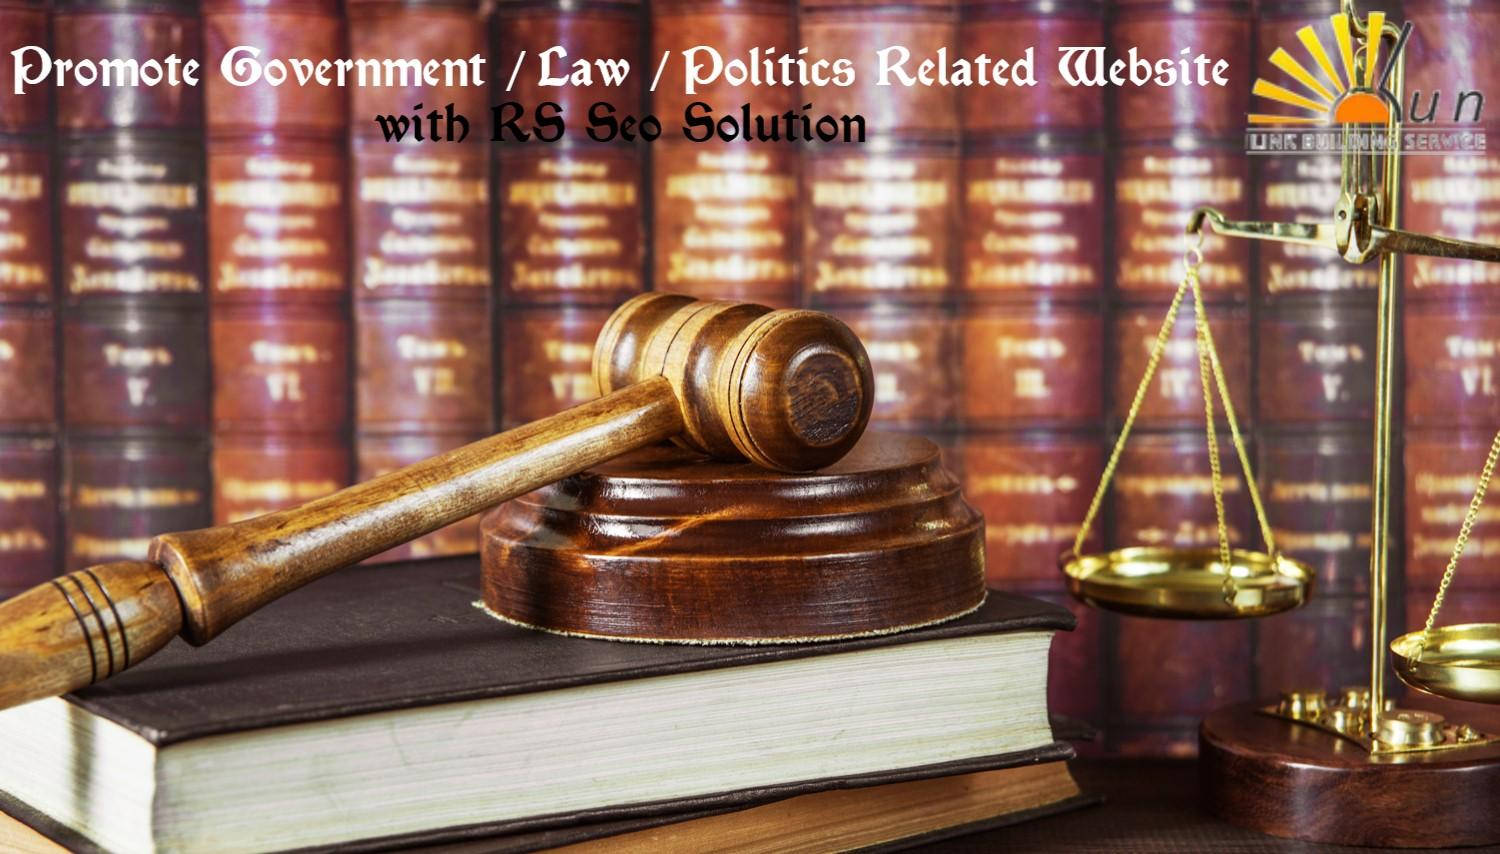 Government, Law and Politics